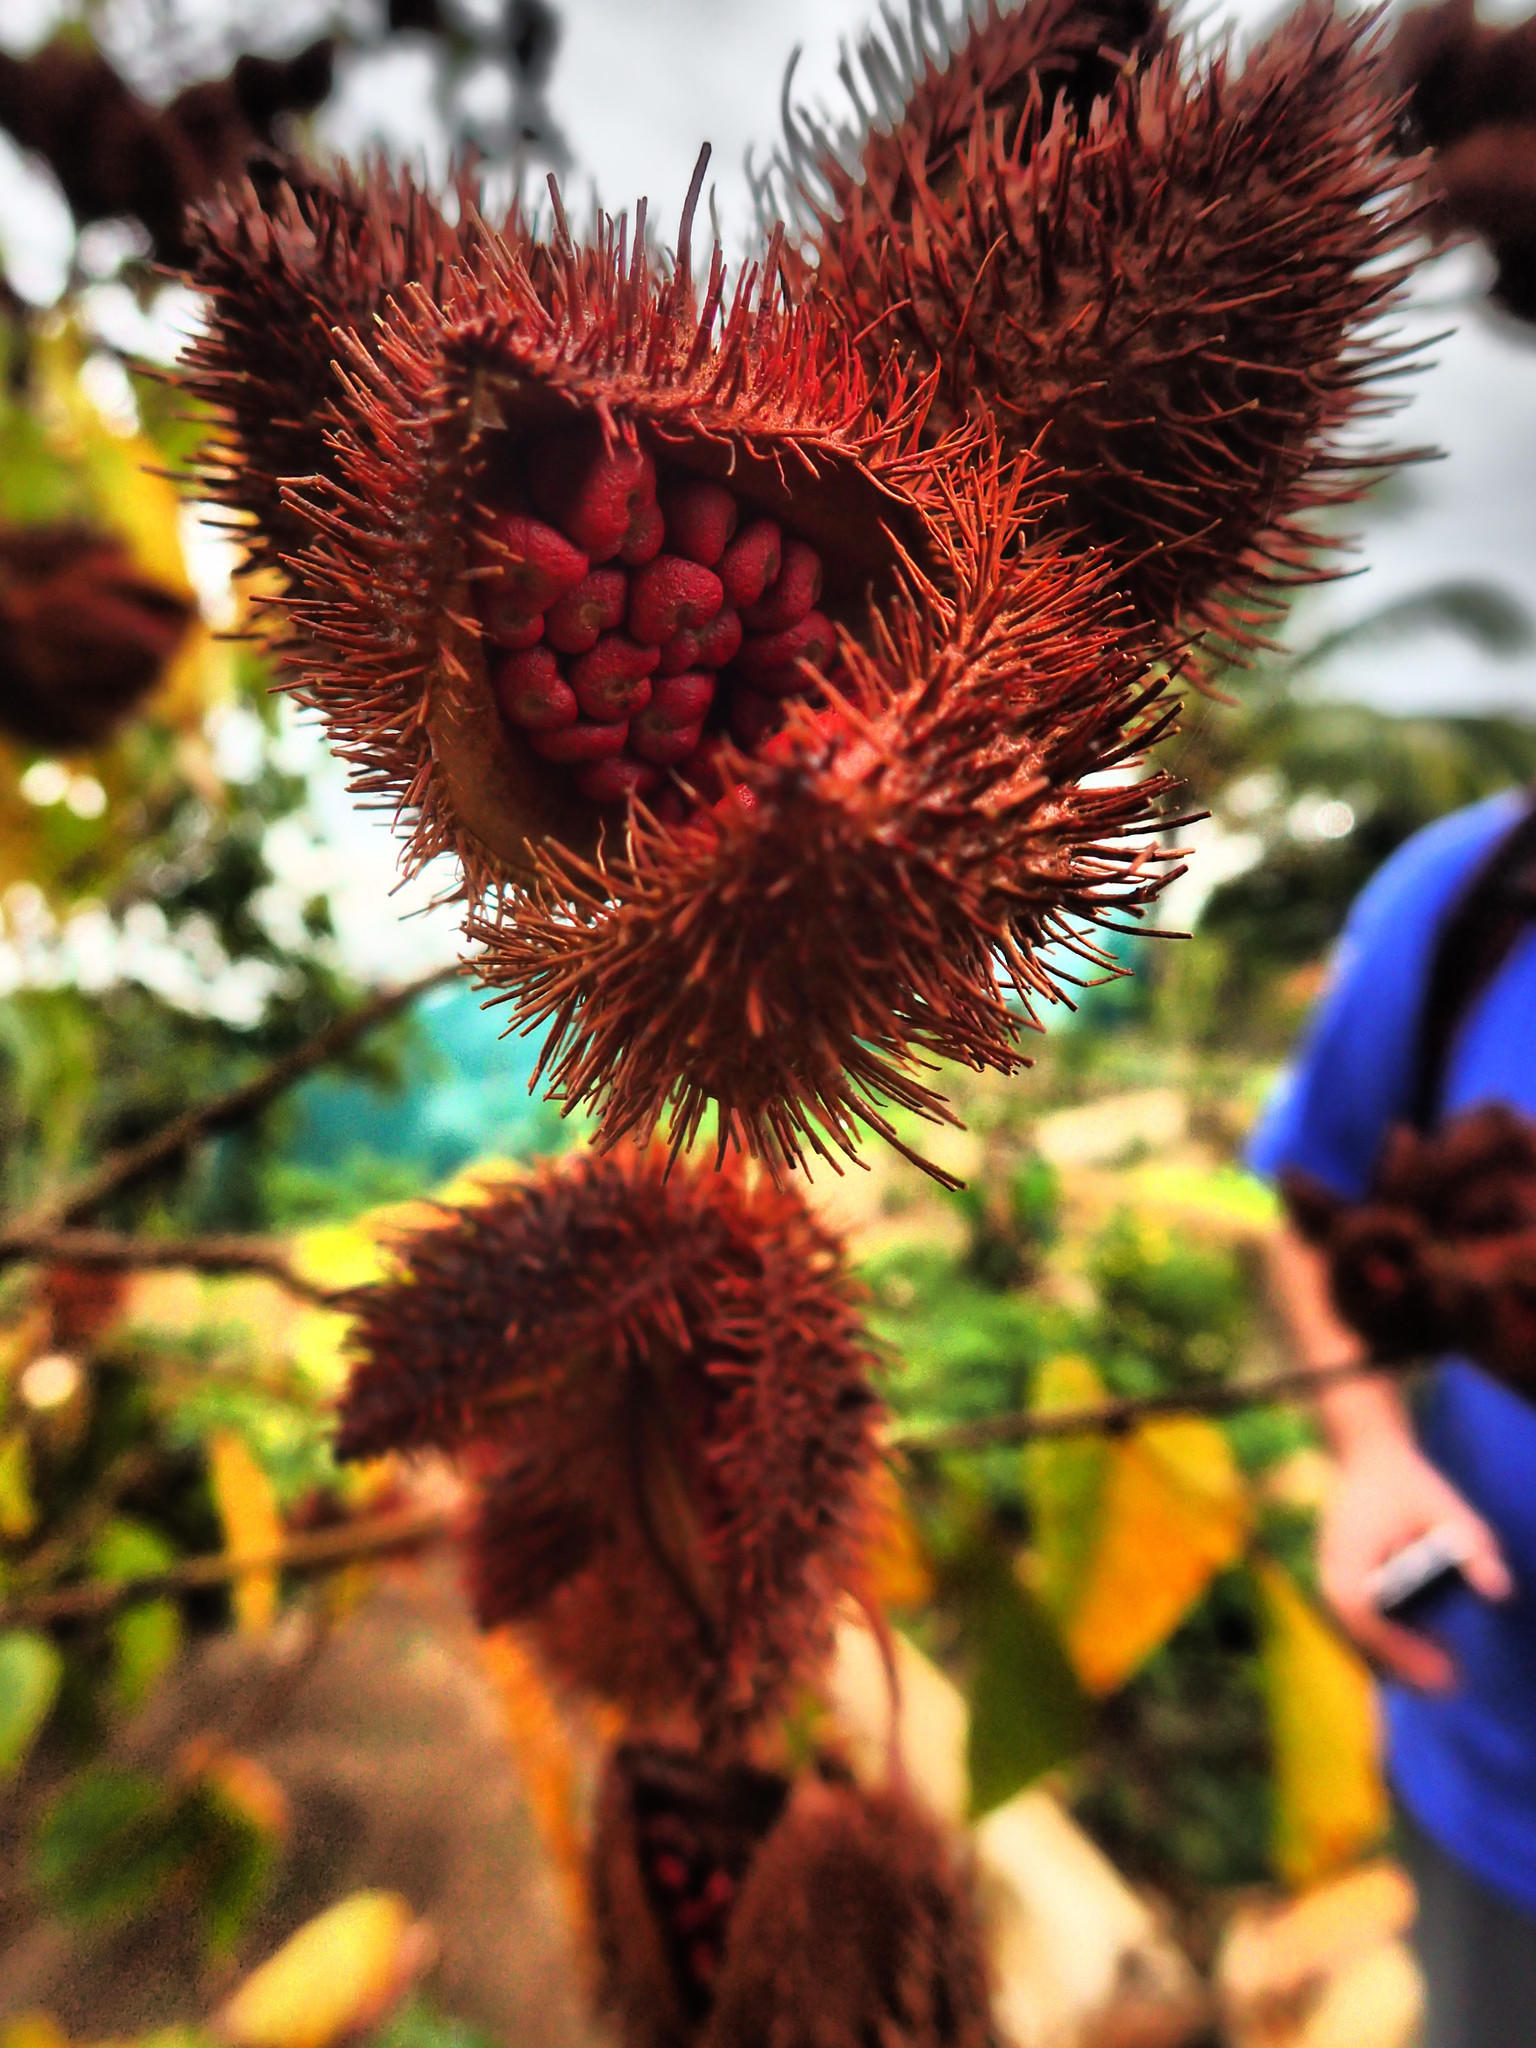 Among other exotic crops at the Finca Agroecologica El Paraiso in Vinales is achiote, a seed used to make the spice and natural food coloring additive annatto.